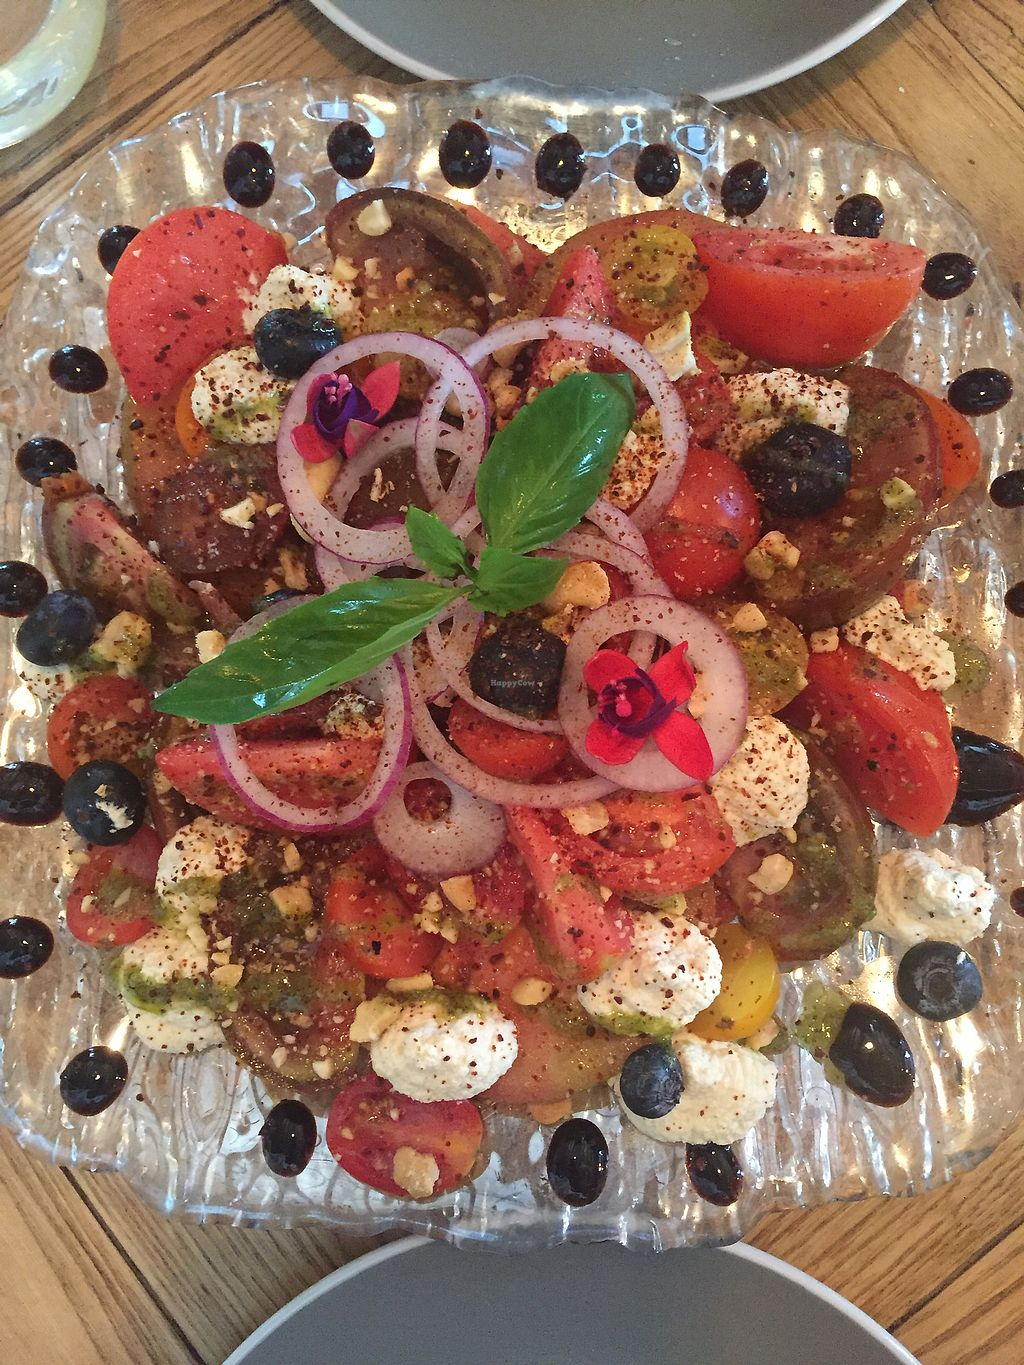 "Photo of Gusto Ristobar  by <a href=""/members/profile/lmd06"">lmd06</a> <br/>Tomato and cashew cheese salad  <br/> September 22, 2017  - <a href='/contact/abuse/image/78419/307220'>Report</a>"